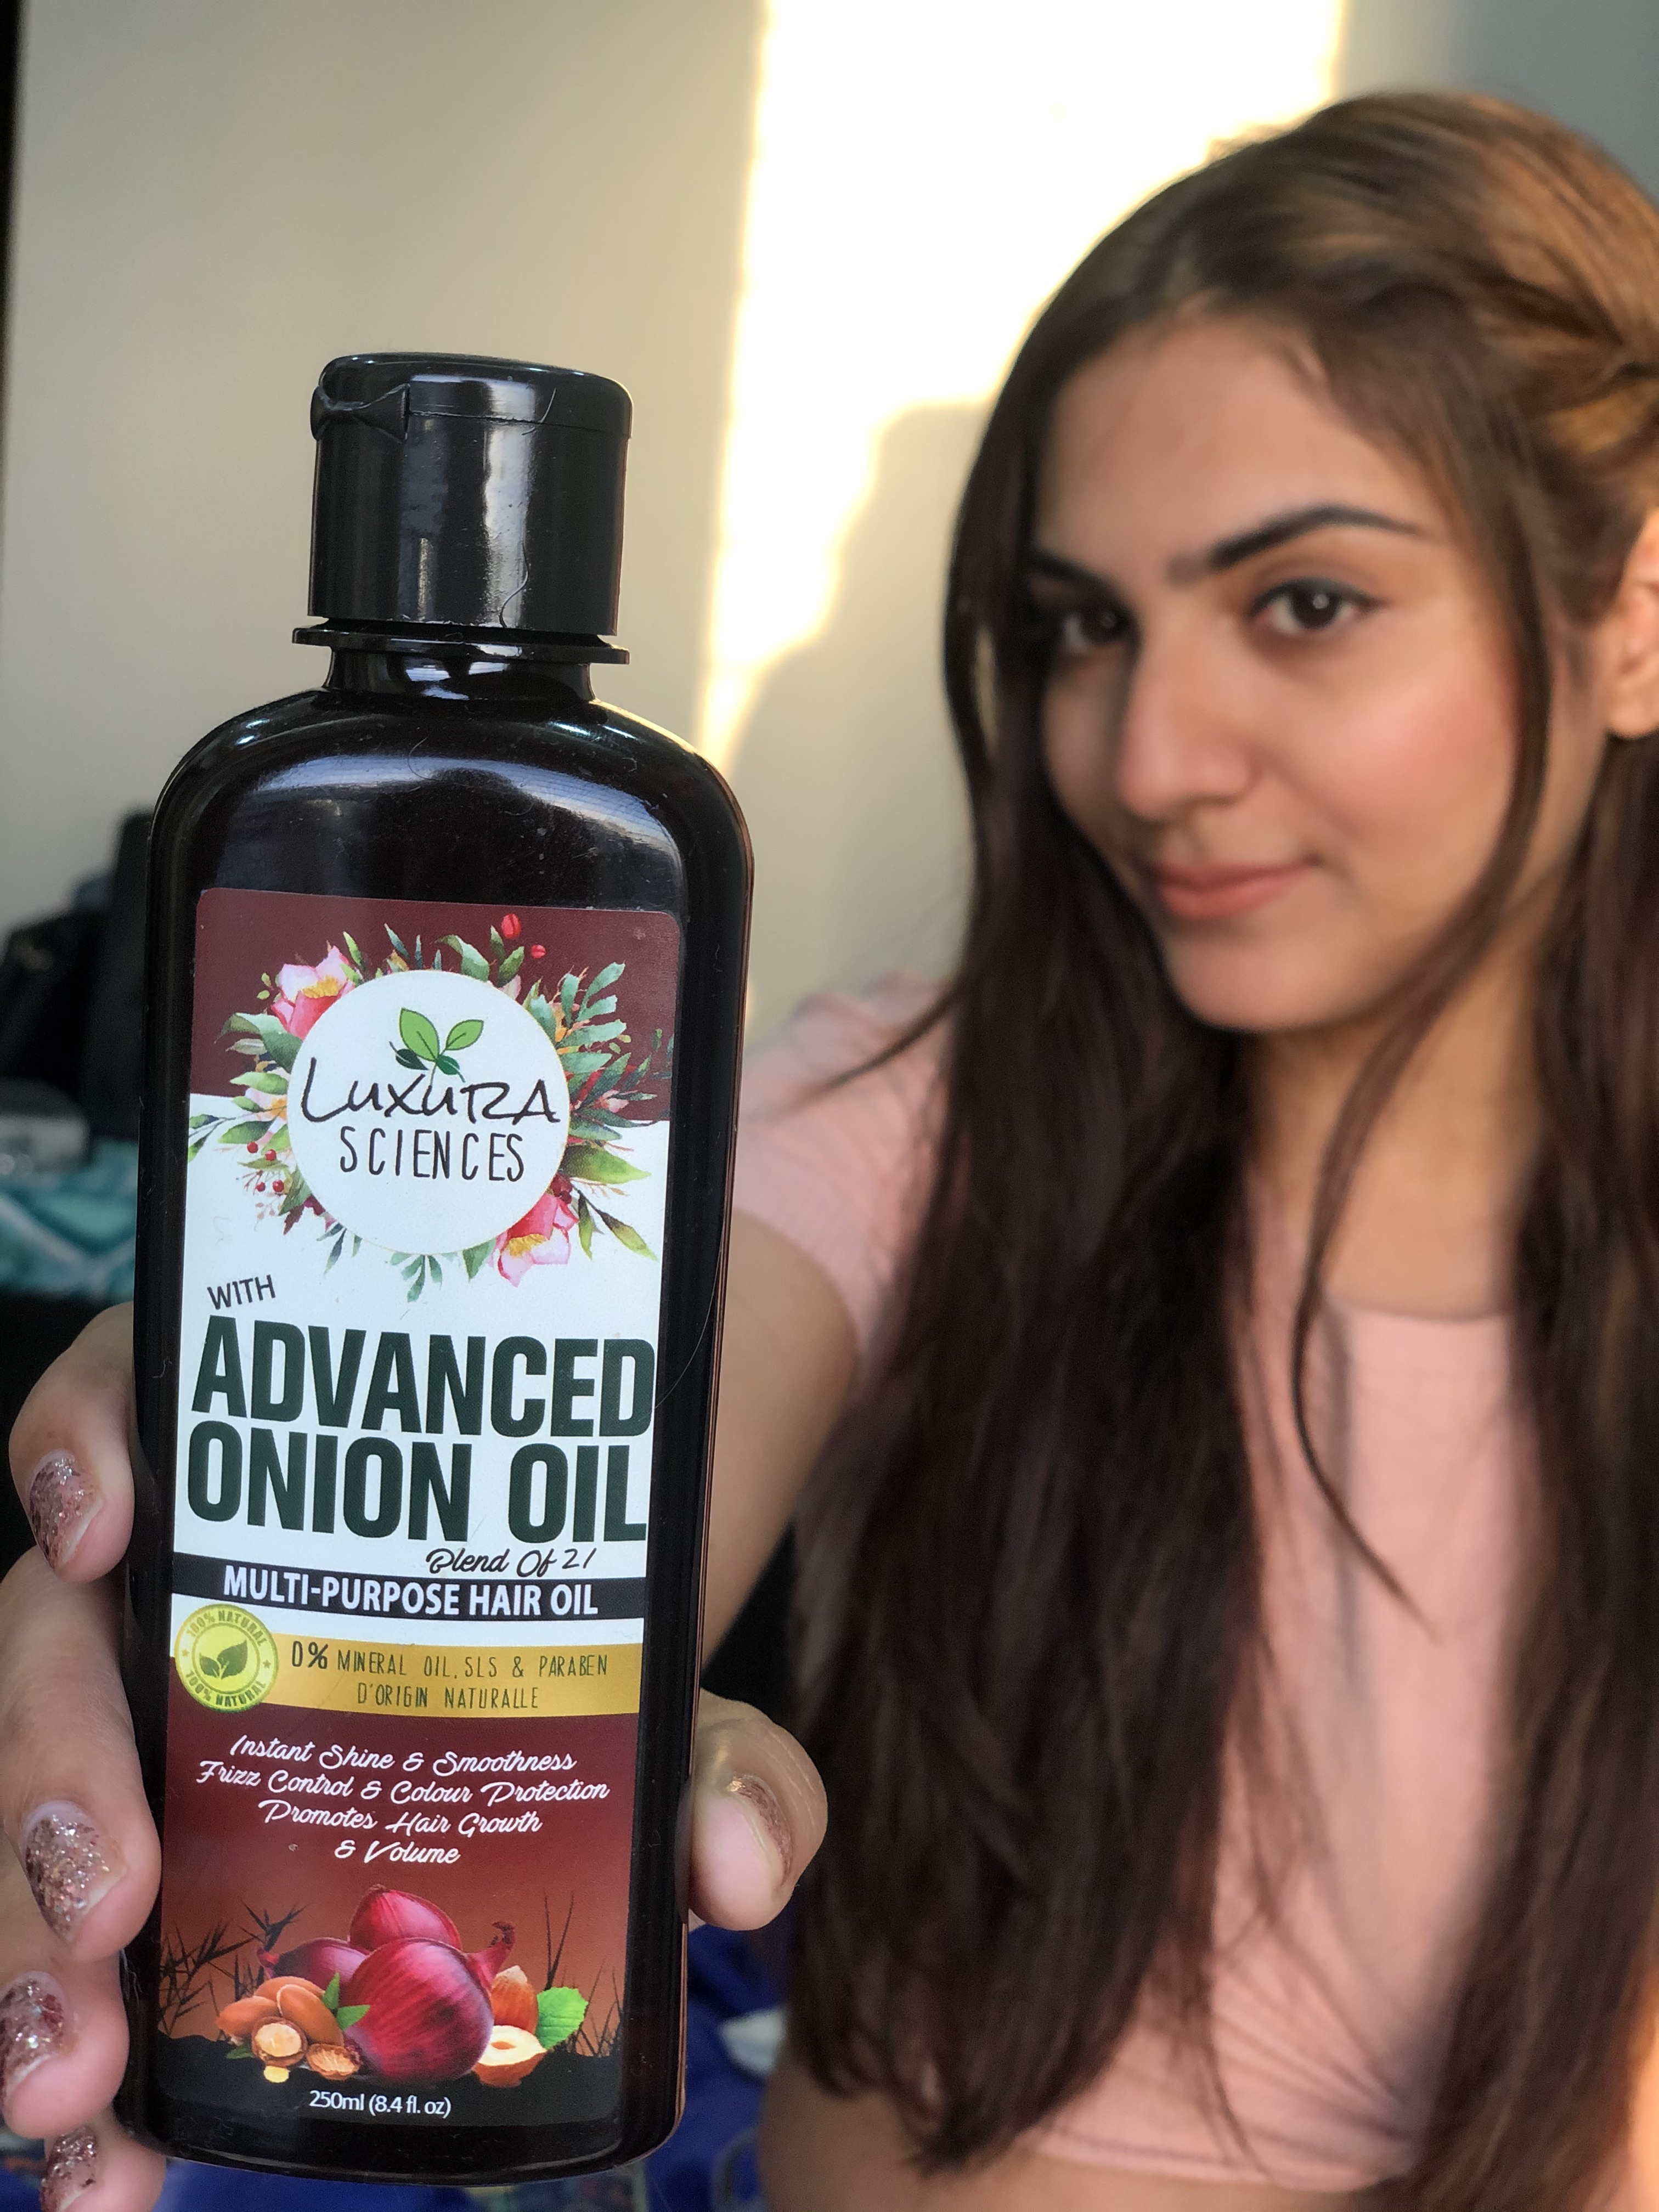 Luxura Sciences Advanced Onion Oil 250 ml-Promote hair growth and volume-By aditi_awasthi